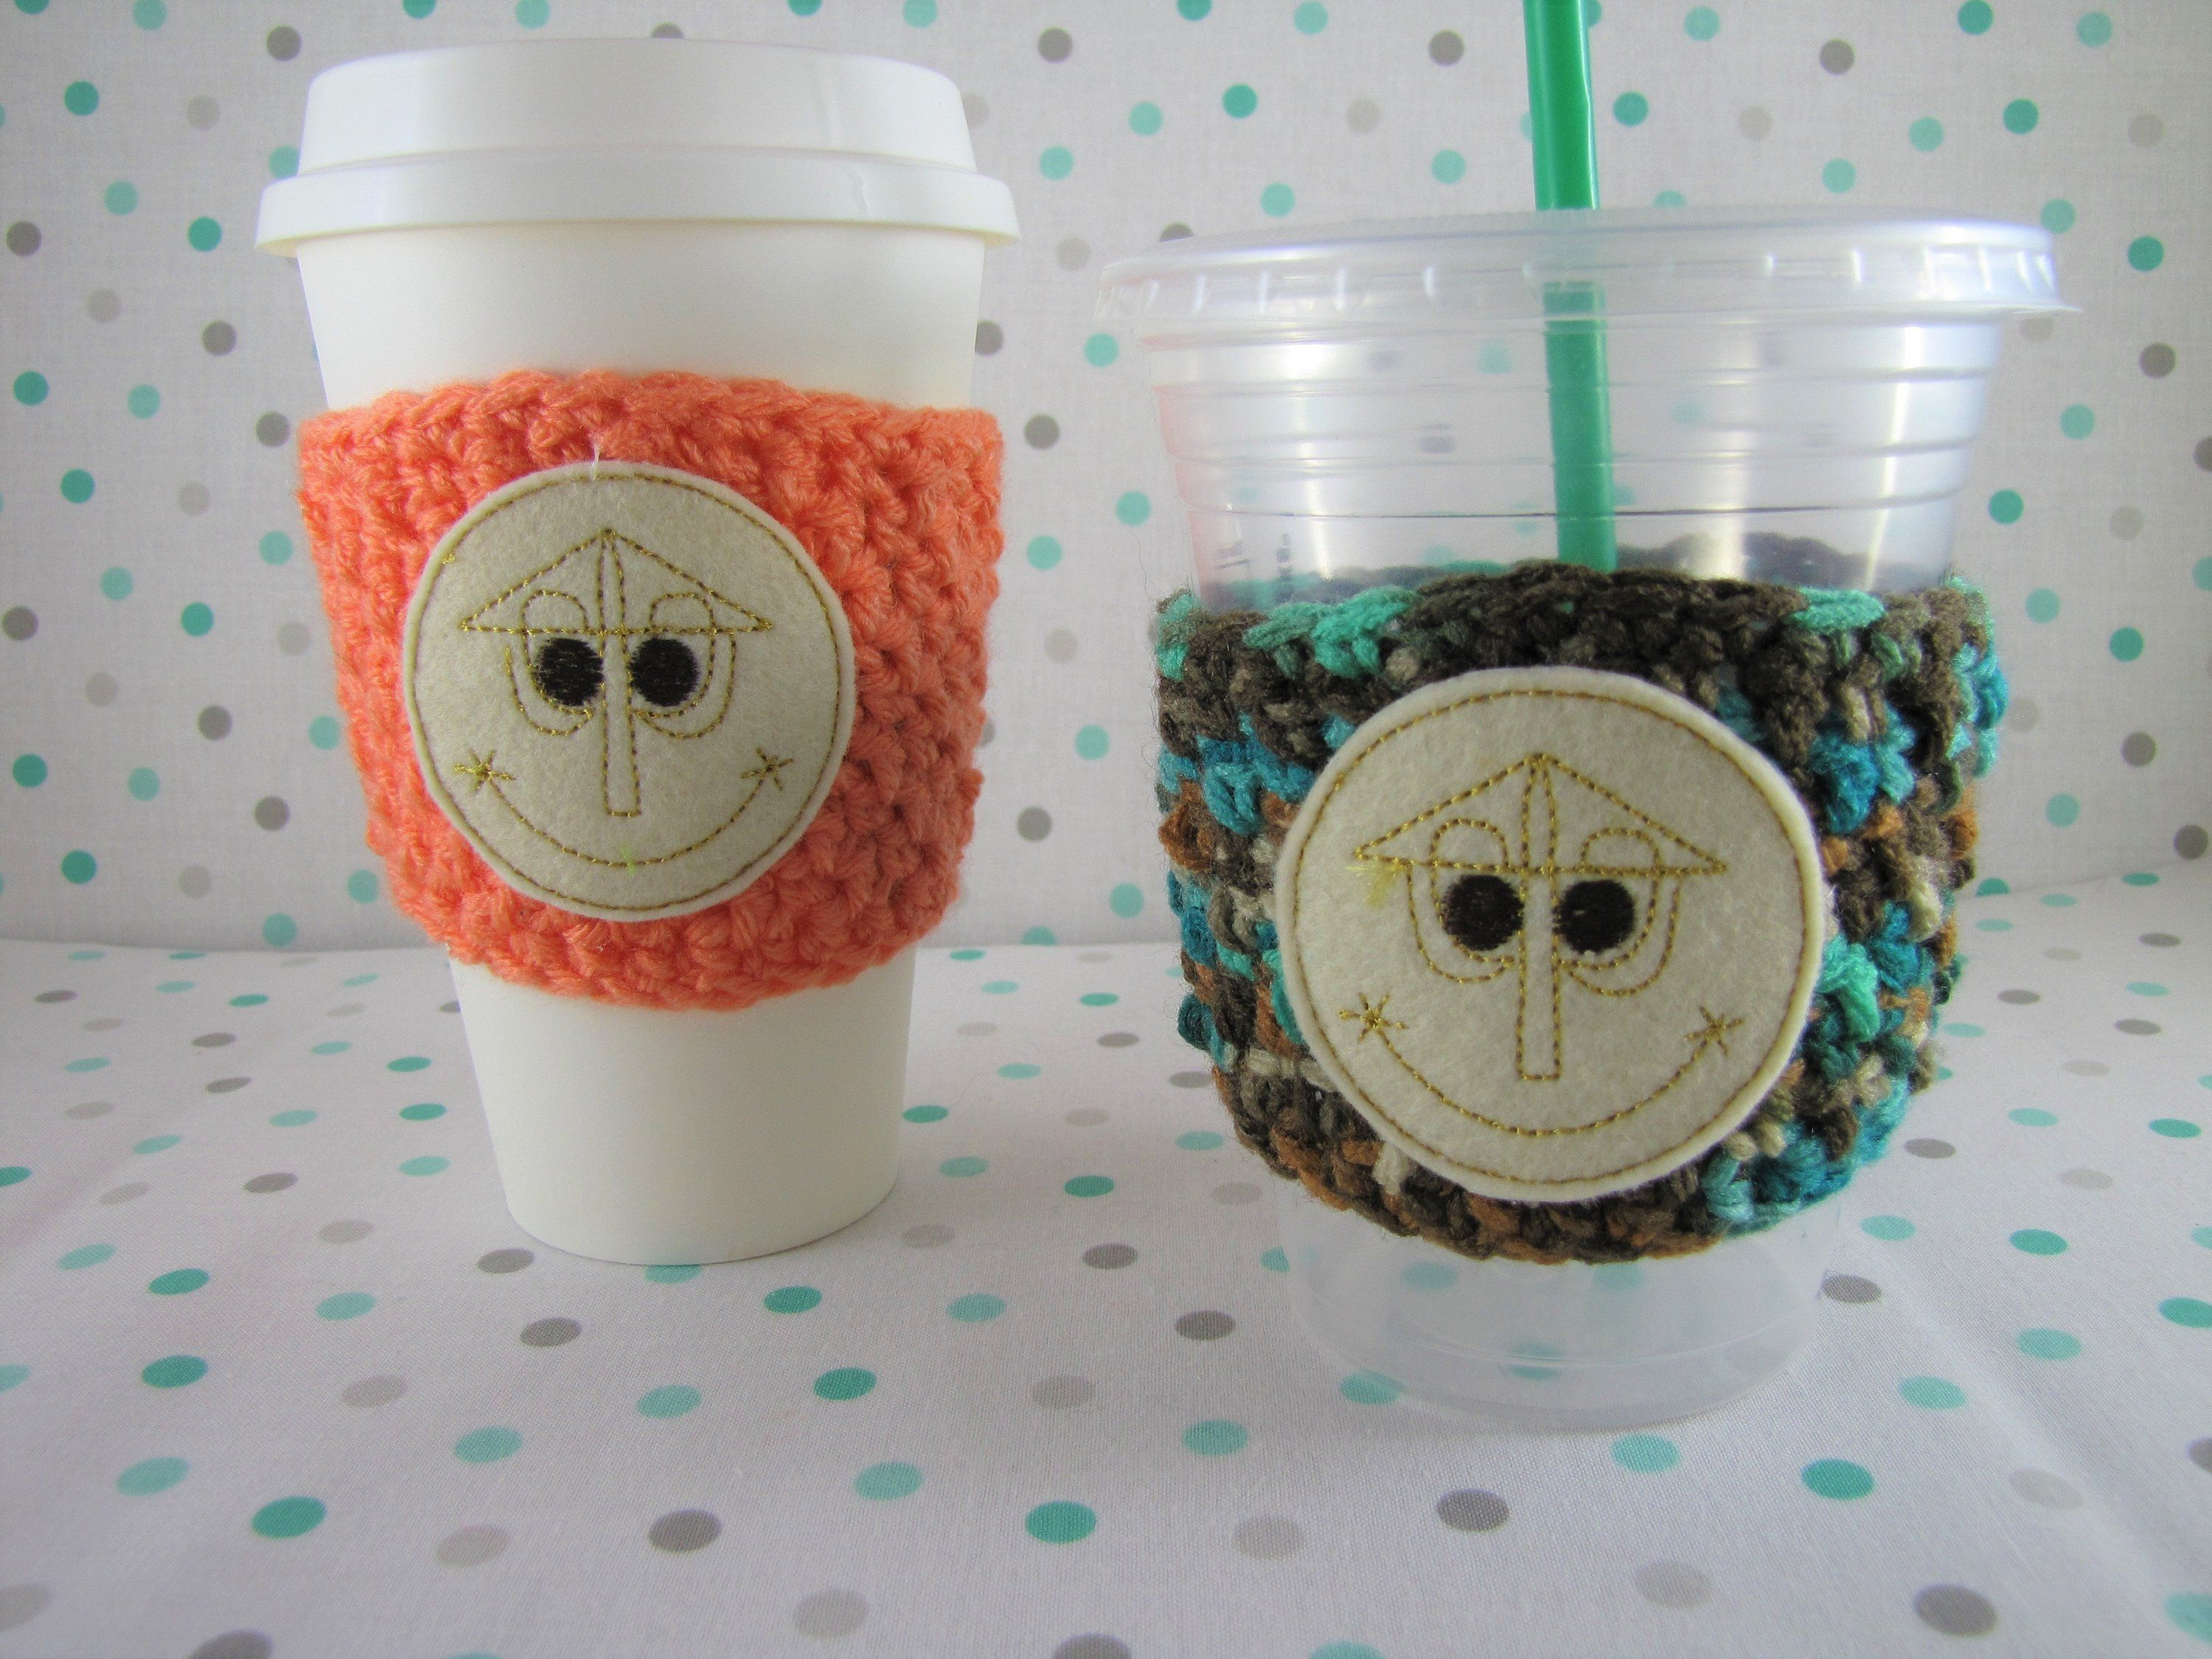 Small World Cup Cozy, Crochet Cup Cozy, Disney Cup Cozy, Coffee Cup Sleeve, Small World Clock Face, Small World Feltie, Starbucks Disney #disneycups